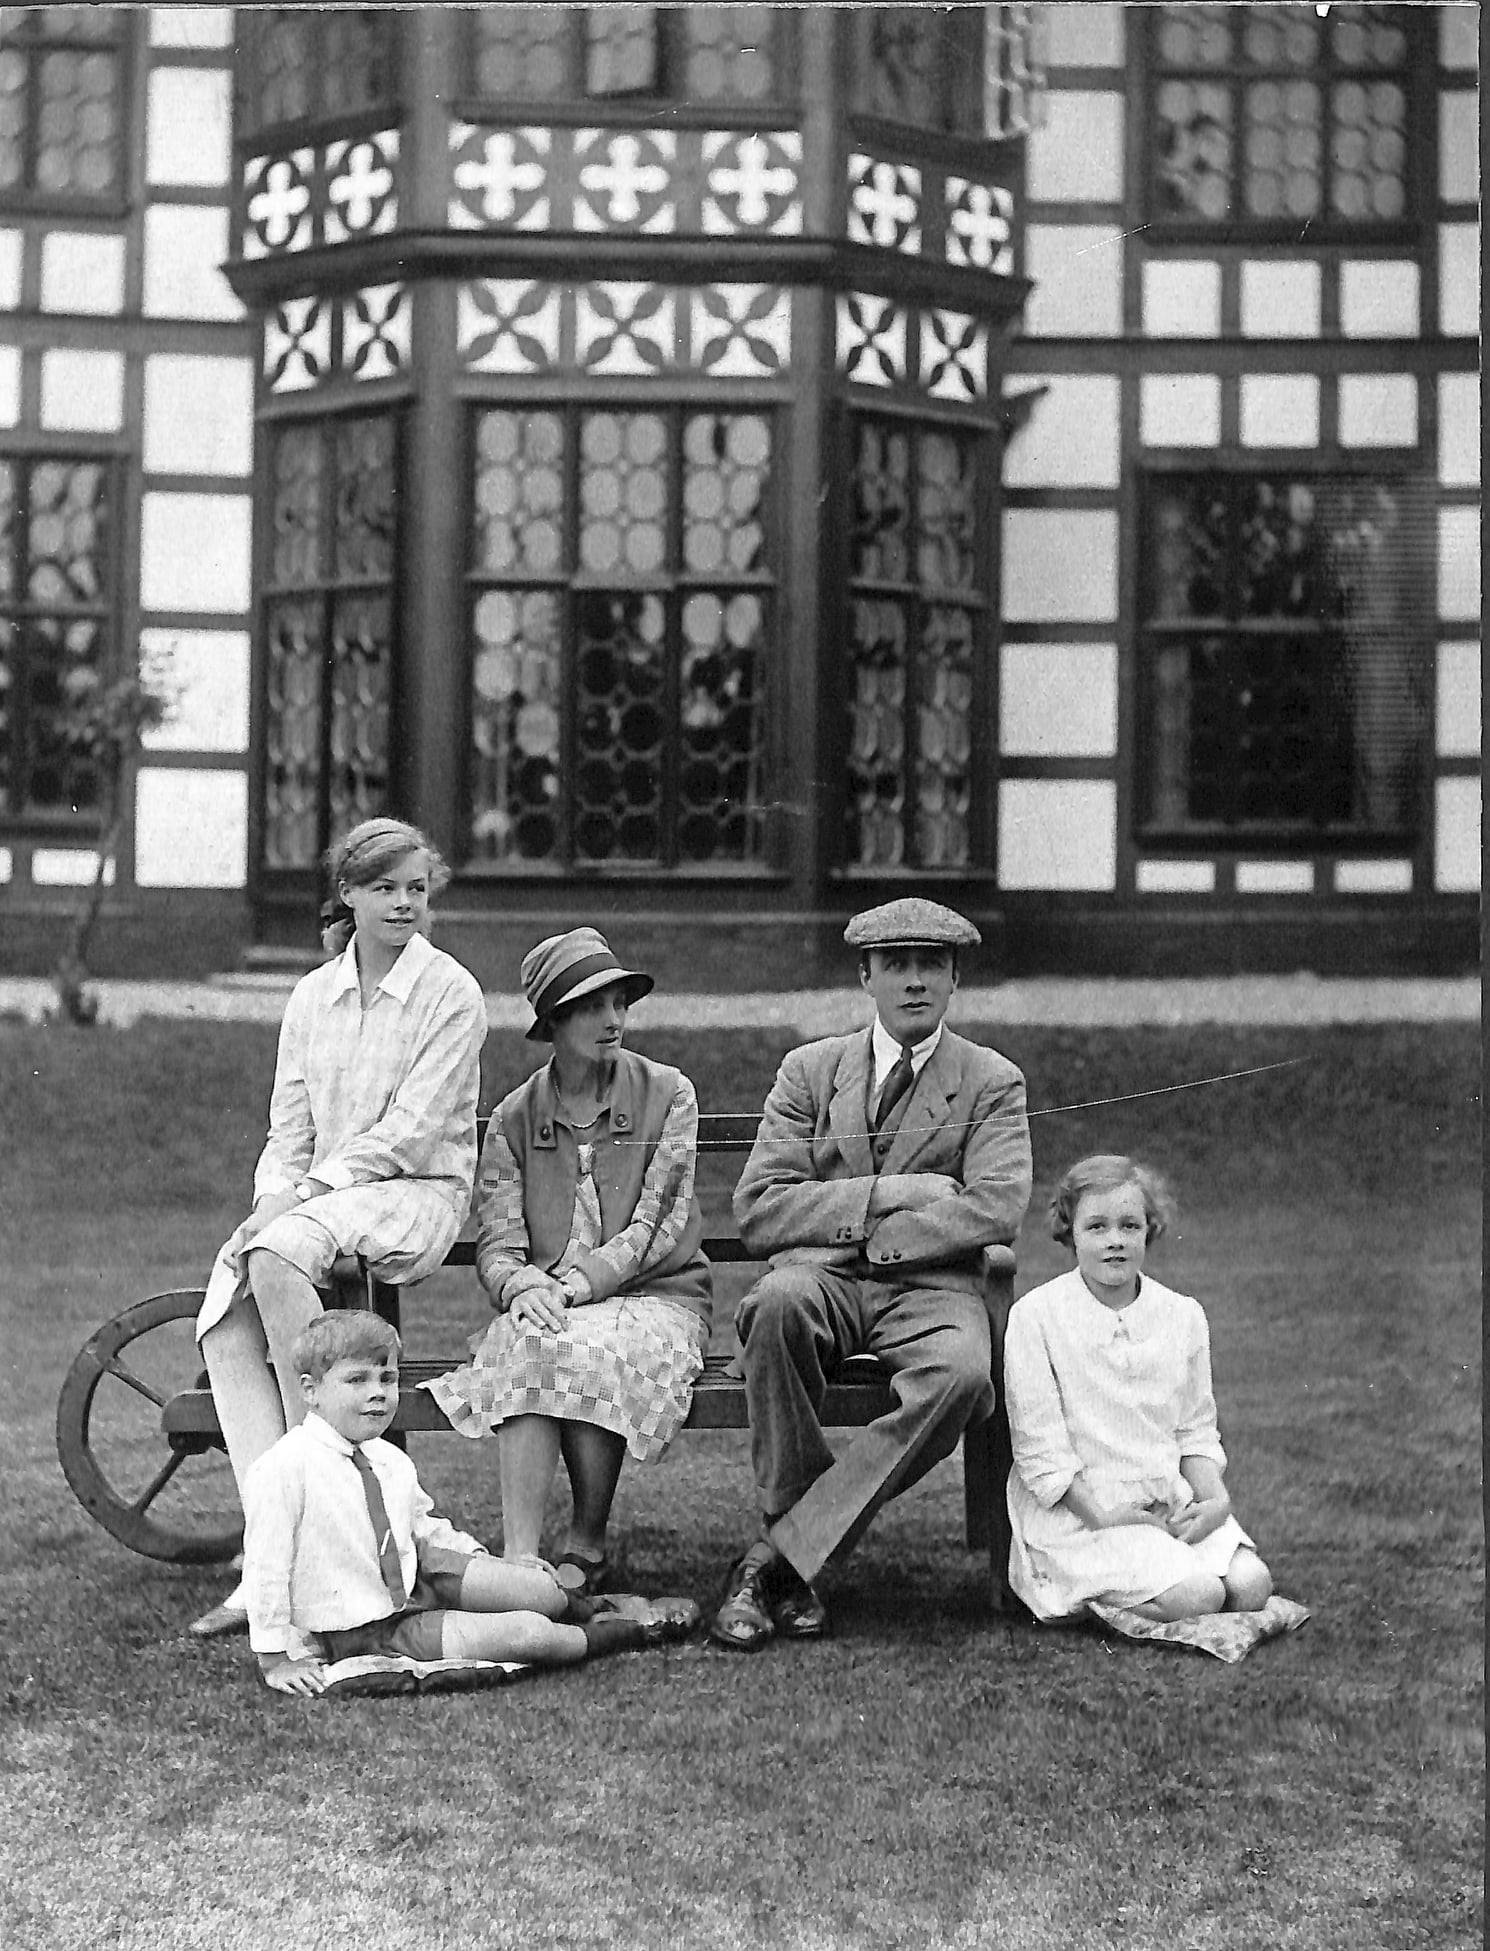 Tatton Family outside Bramhall Hall, 1928. Manchester Local Image Collection ref: m734369